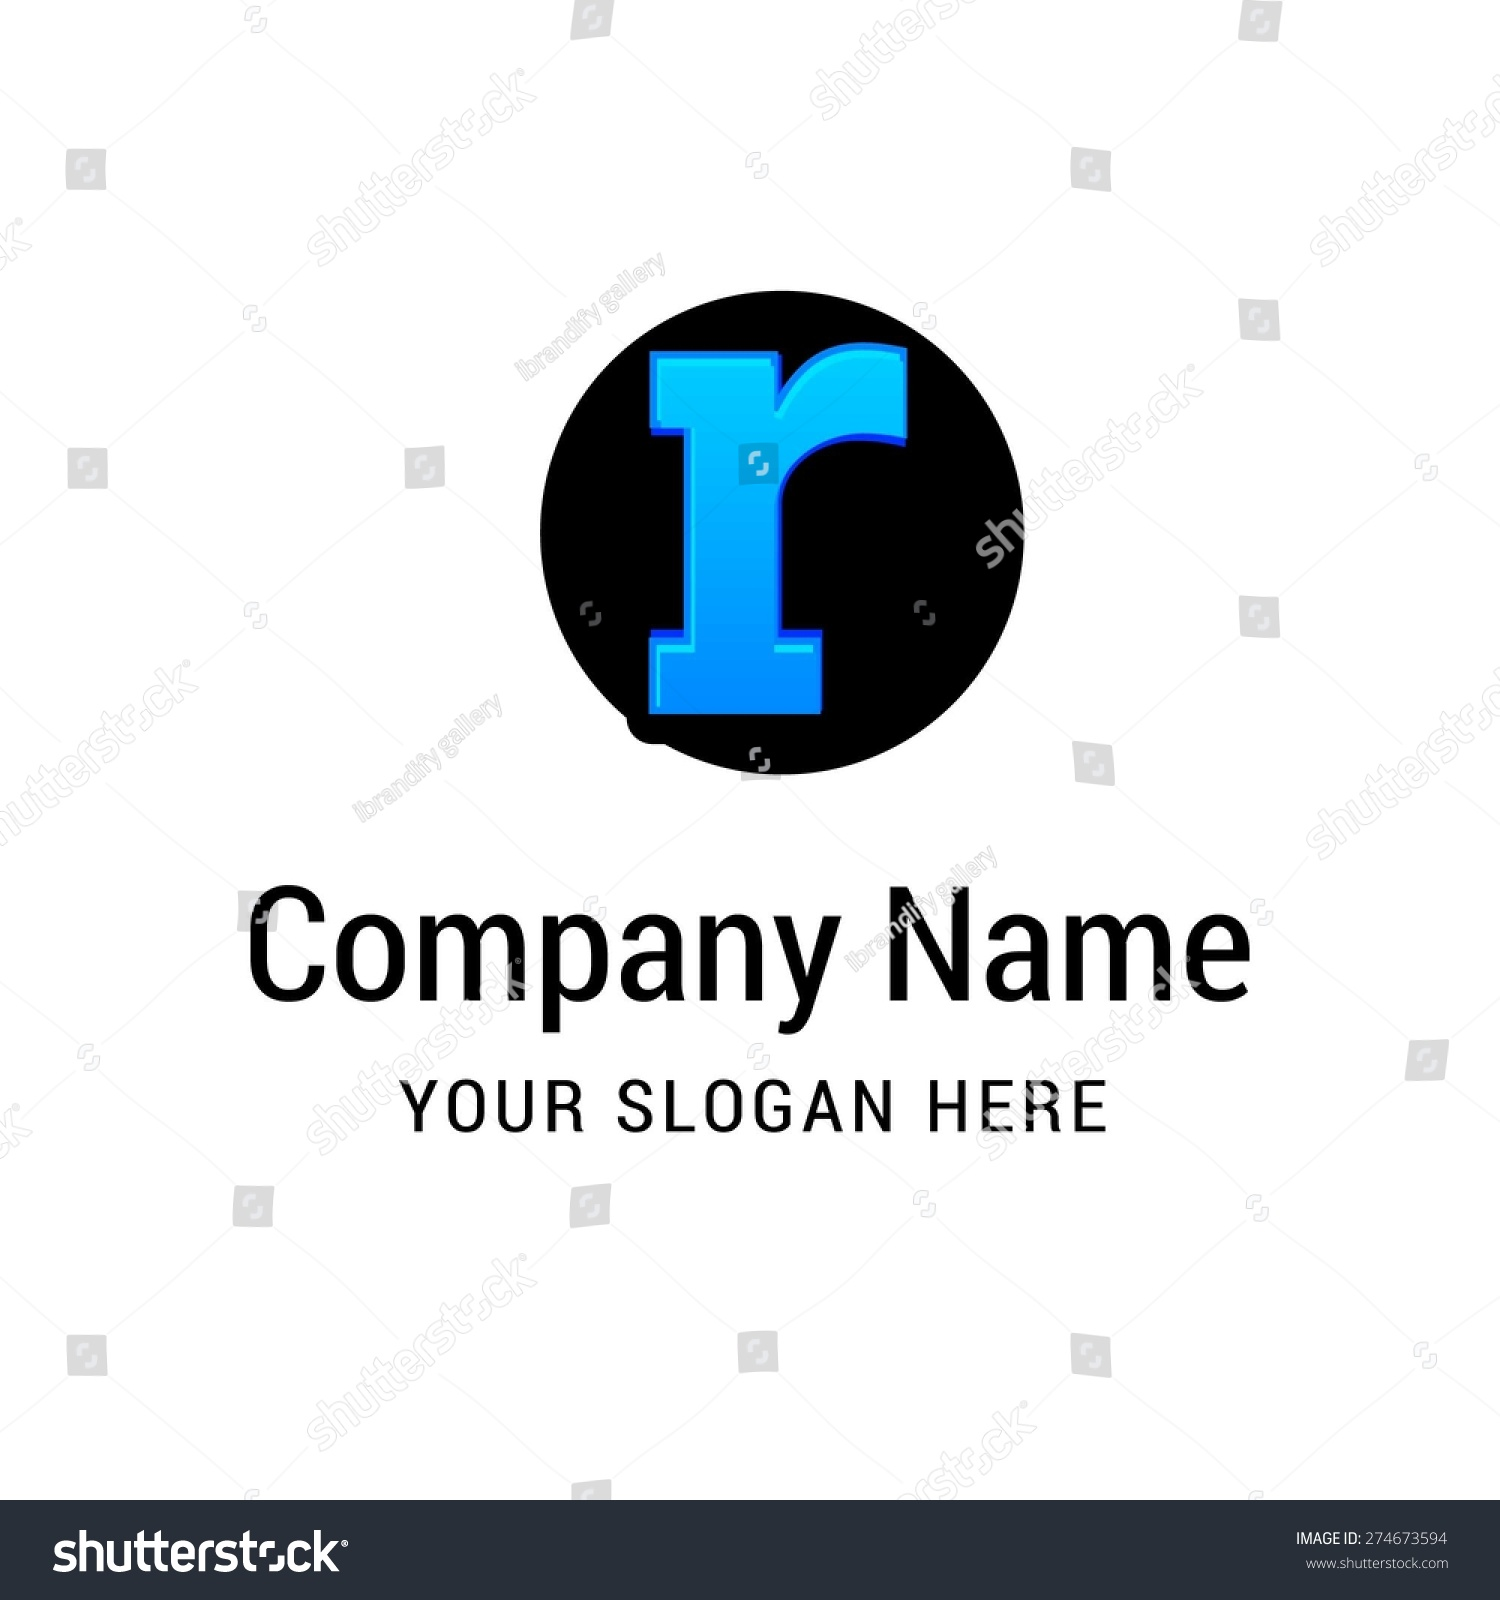 Letter r logo icon design   alphabet letter   Stylish Colorful typographic  template elements   shiny. Letter R Logo Icon Design Alphabet Stock Vector 274673594